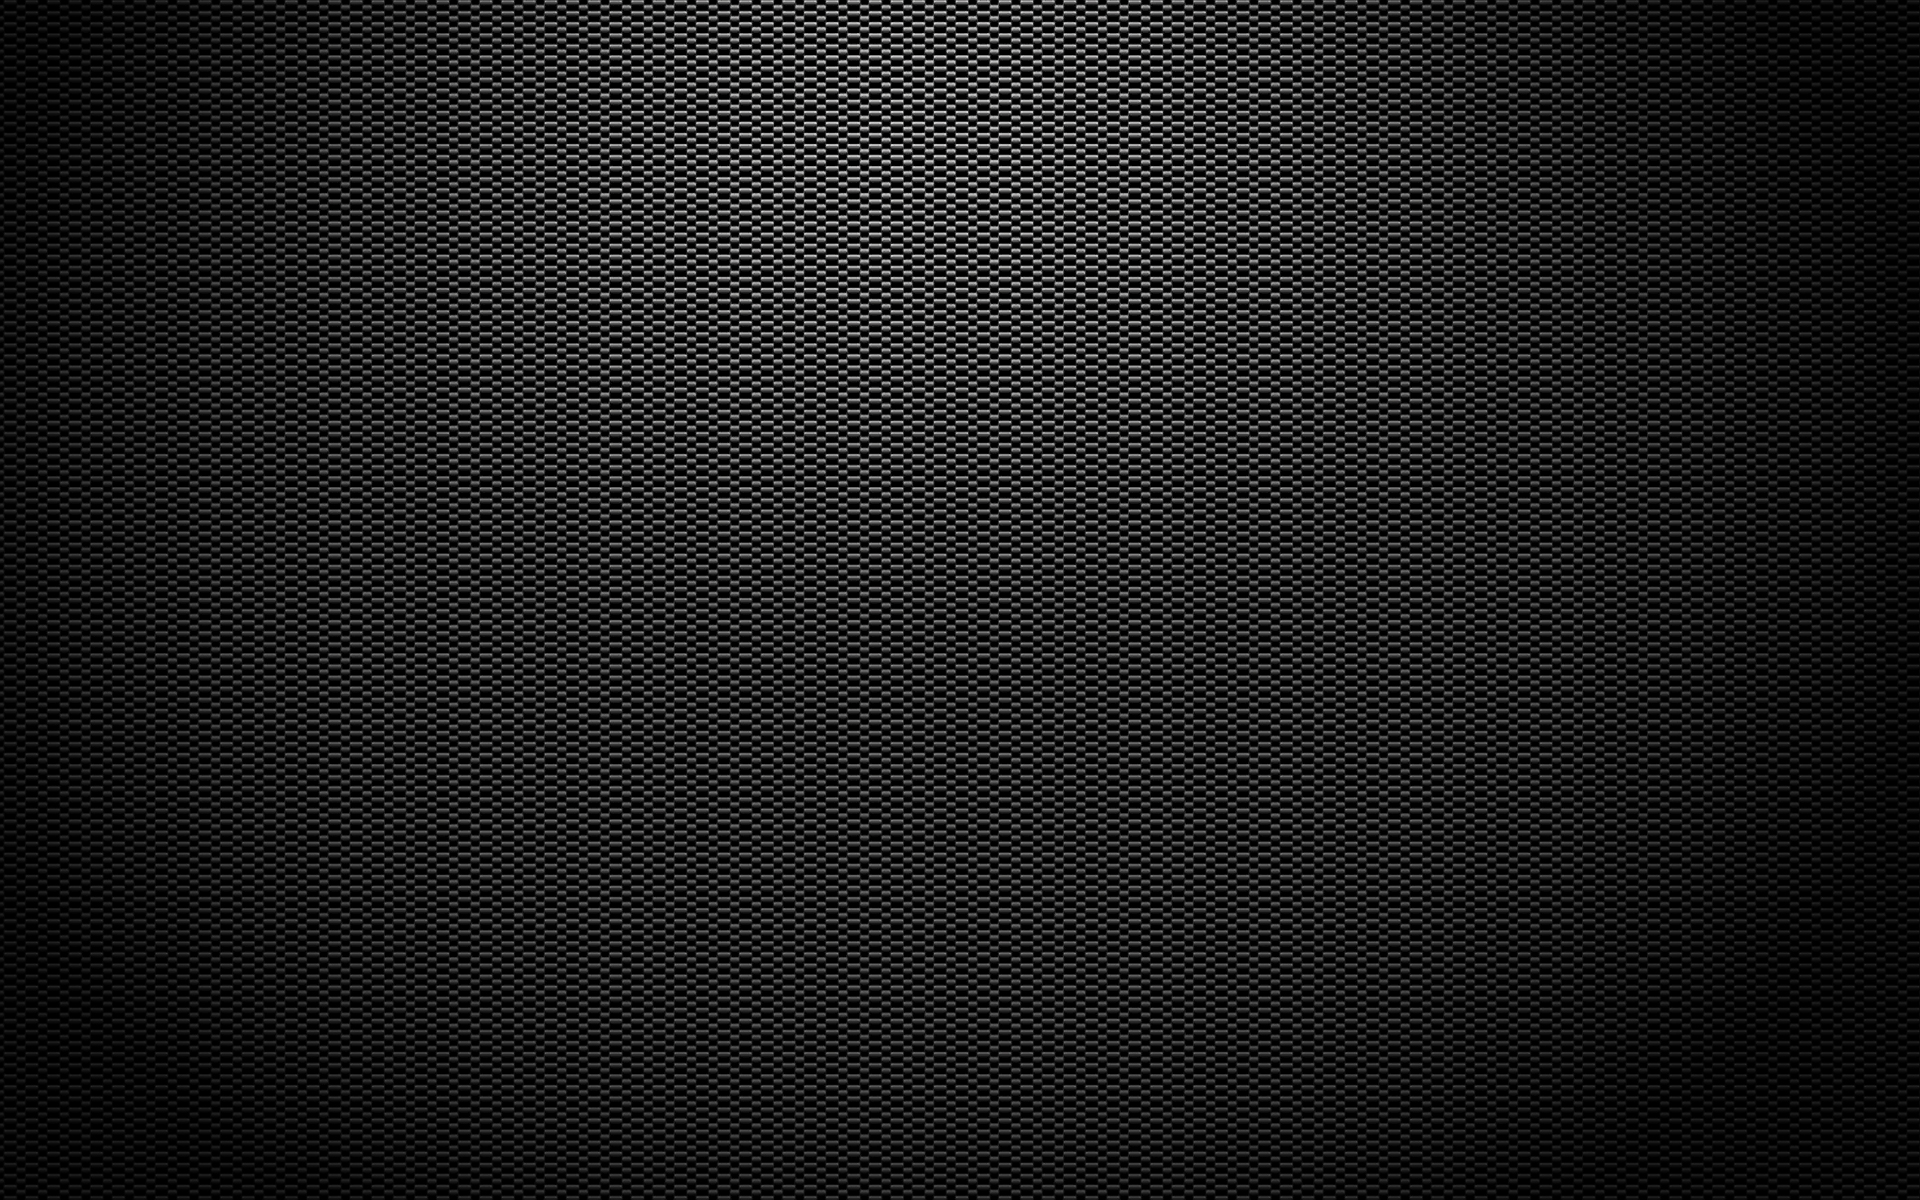 free high resolution backgrounds and textures css author - HD1920×1200